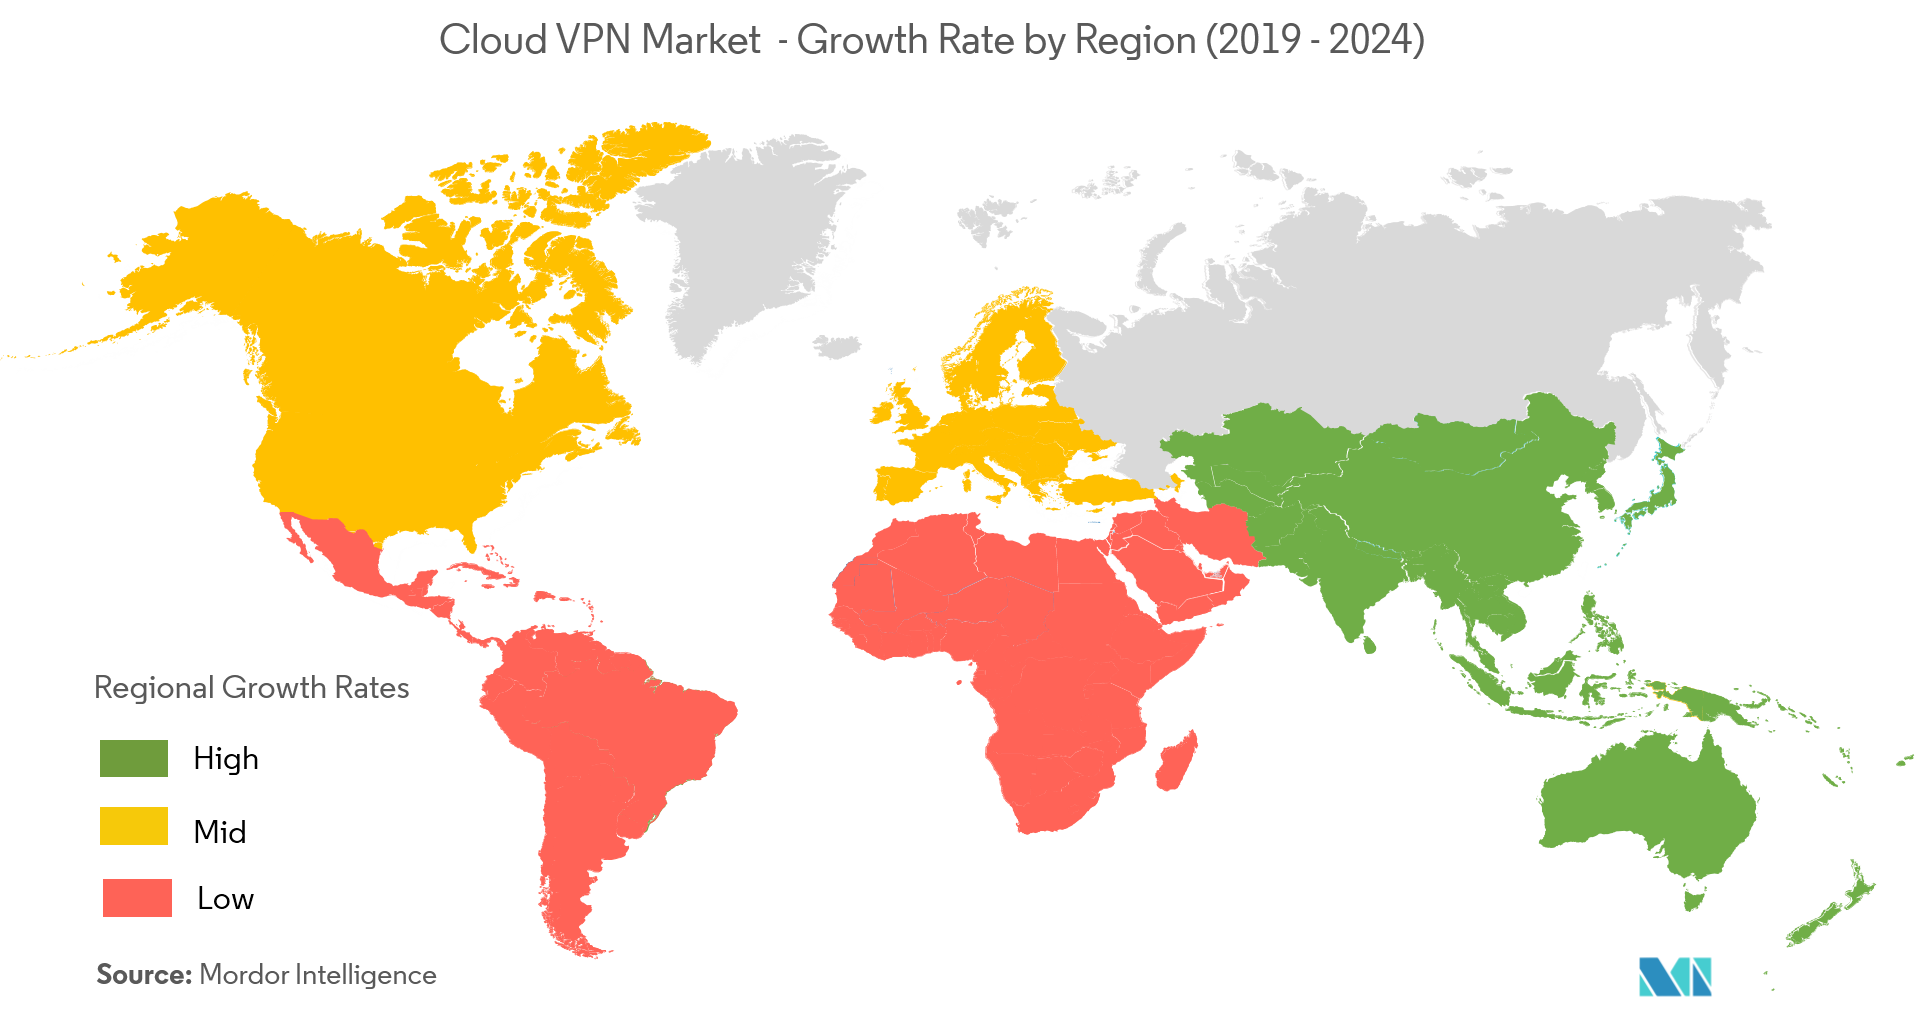 Regional Growth_Cloud VPN Services Market